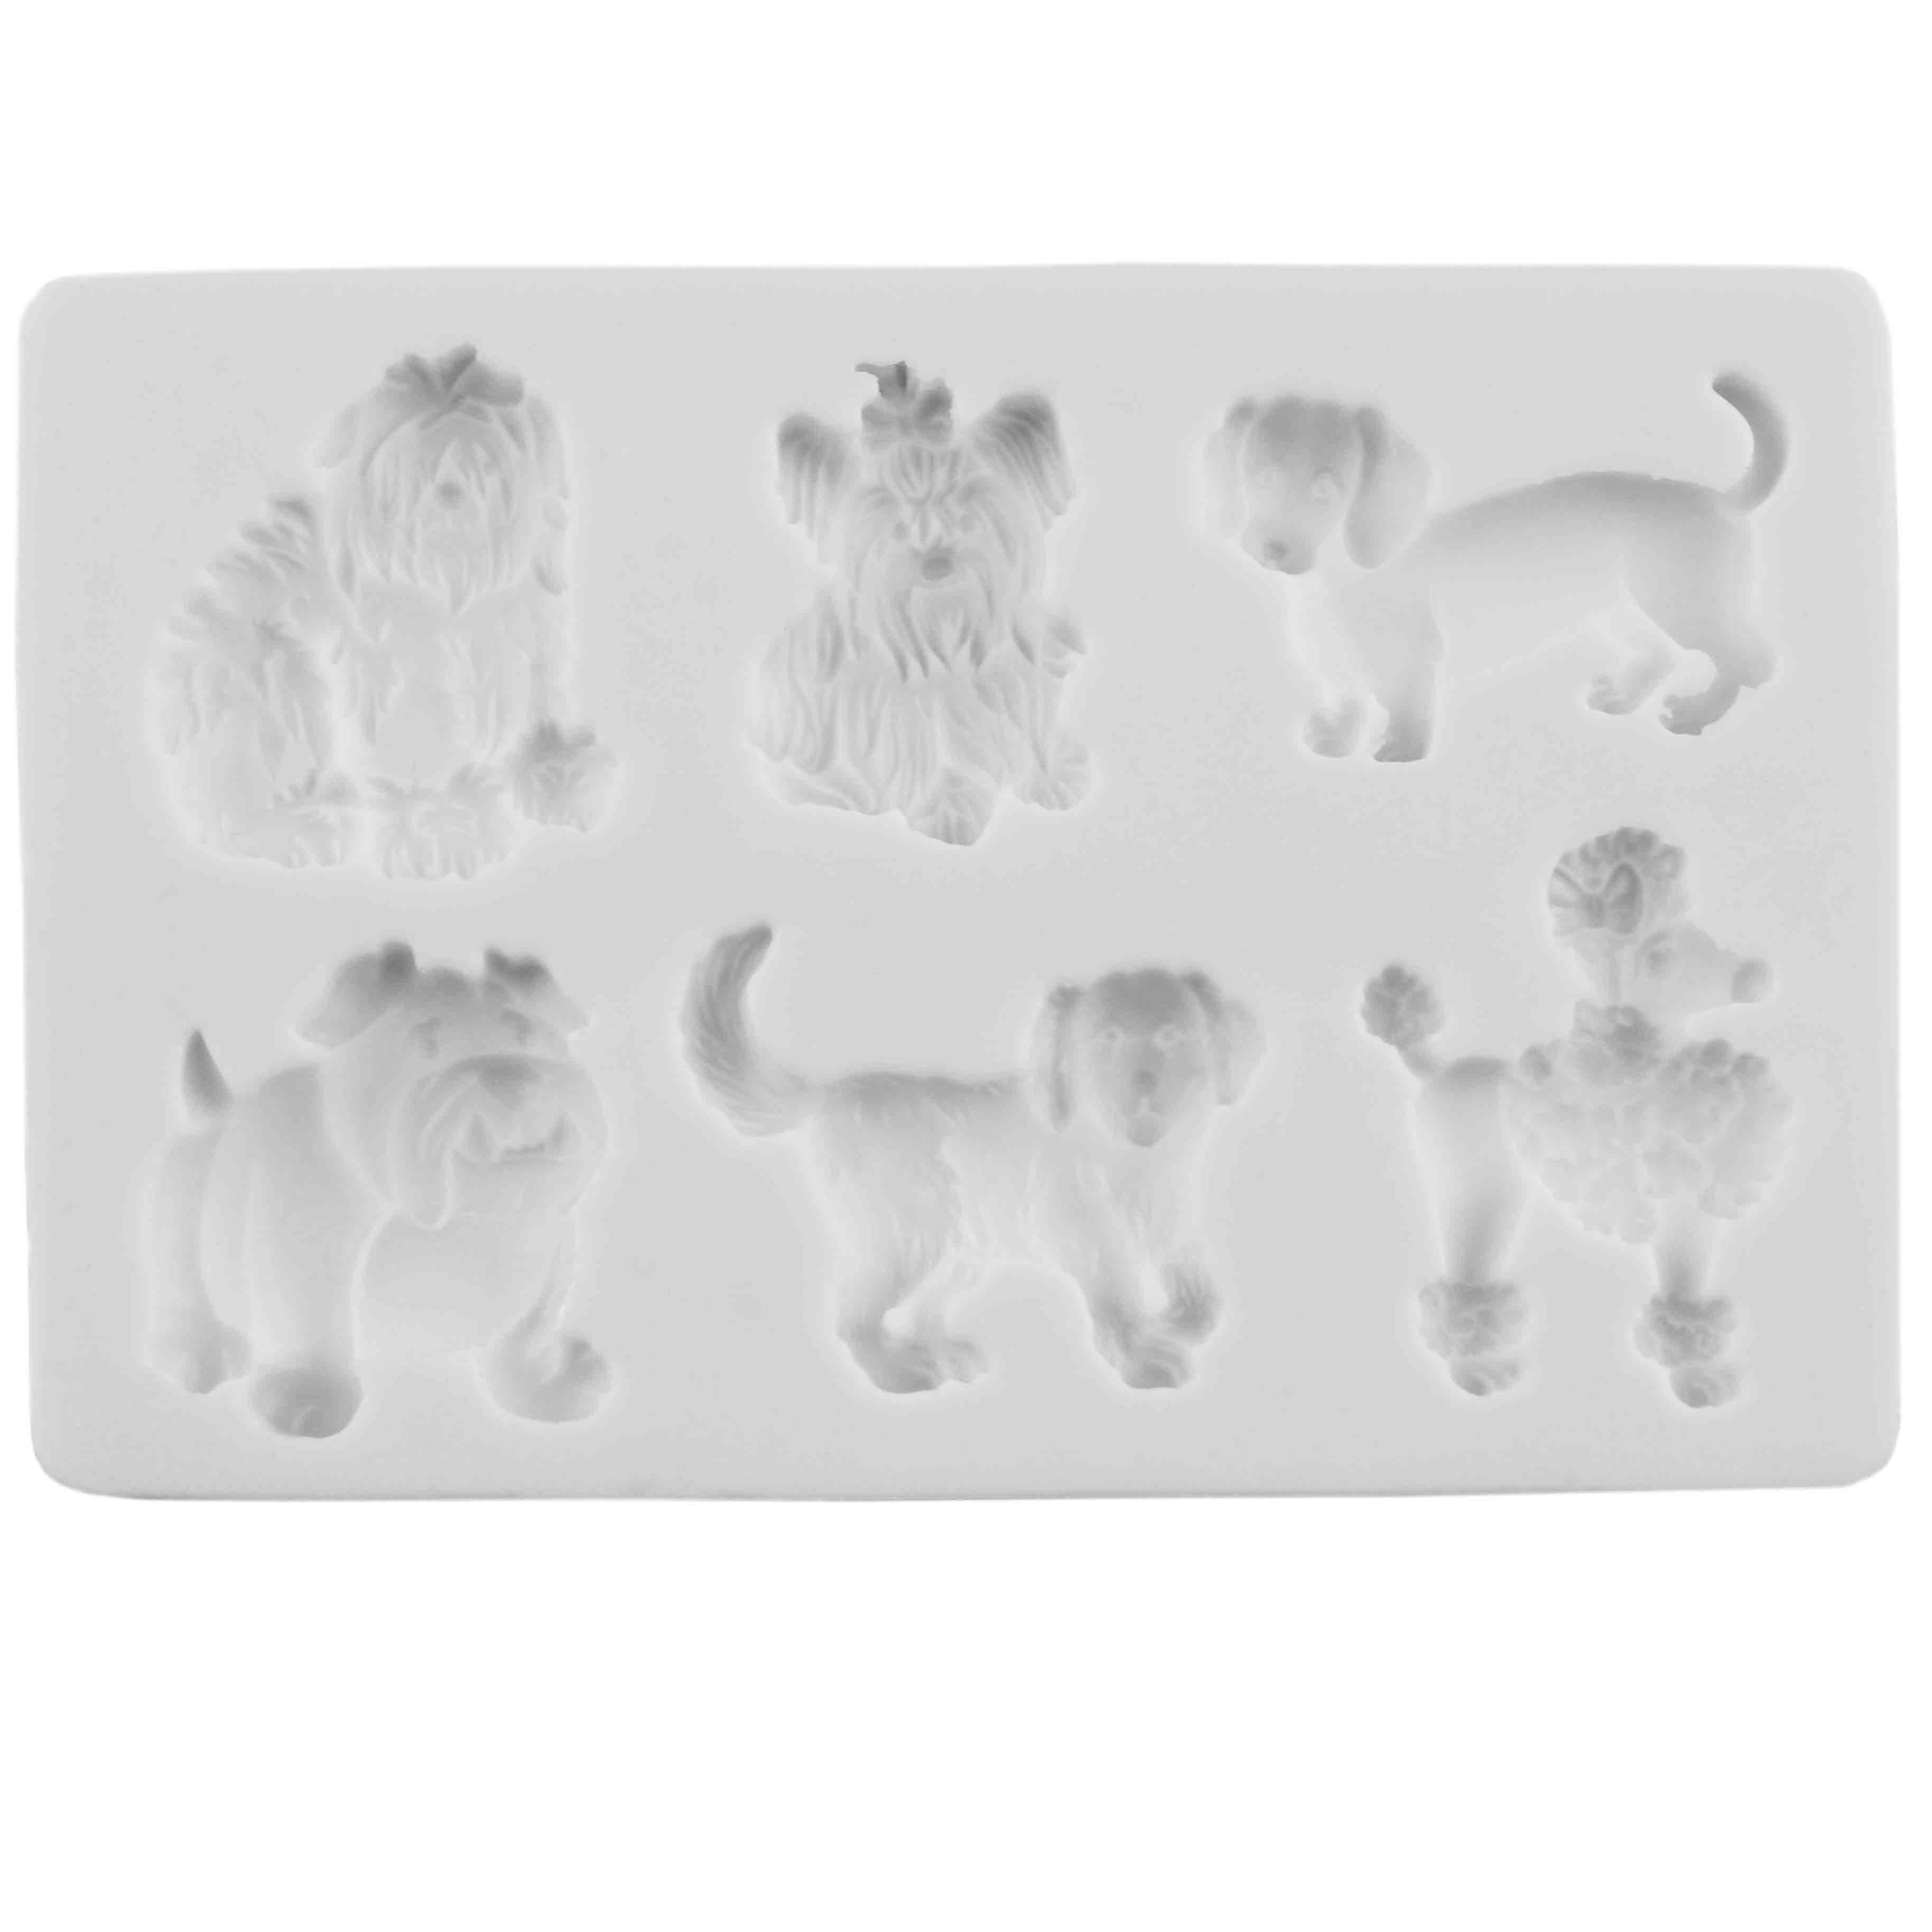 Dogs #2 Silicone Mold